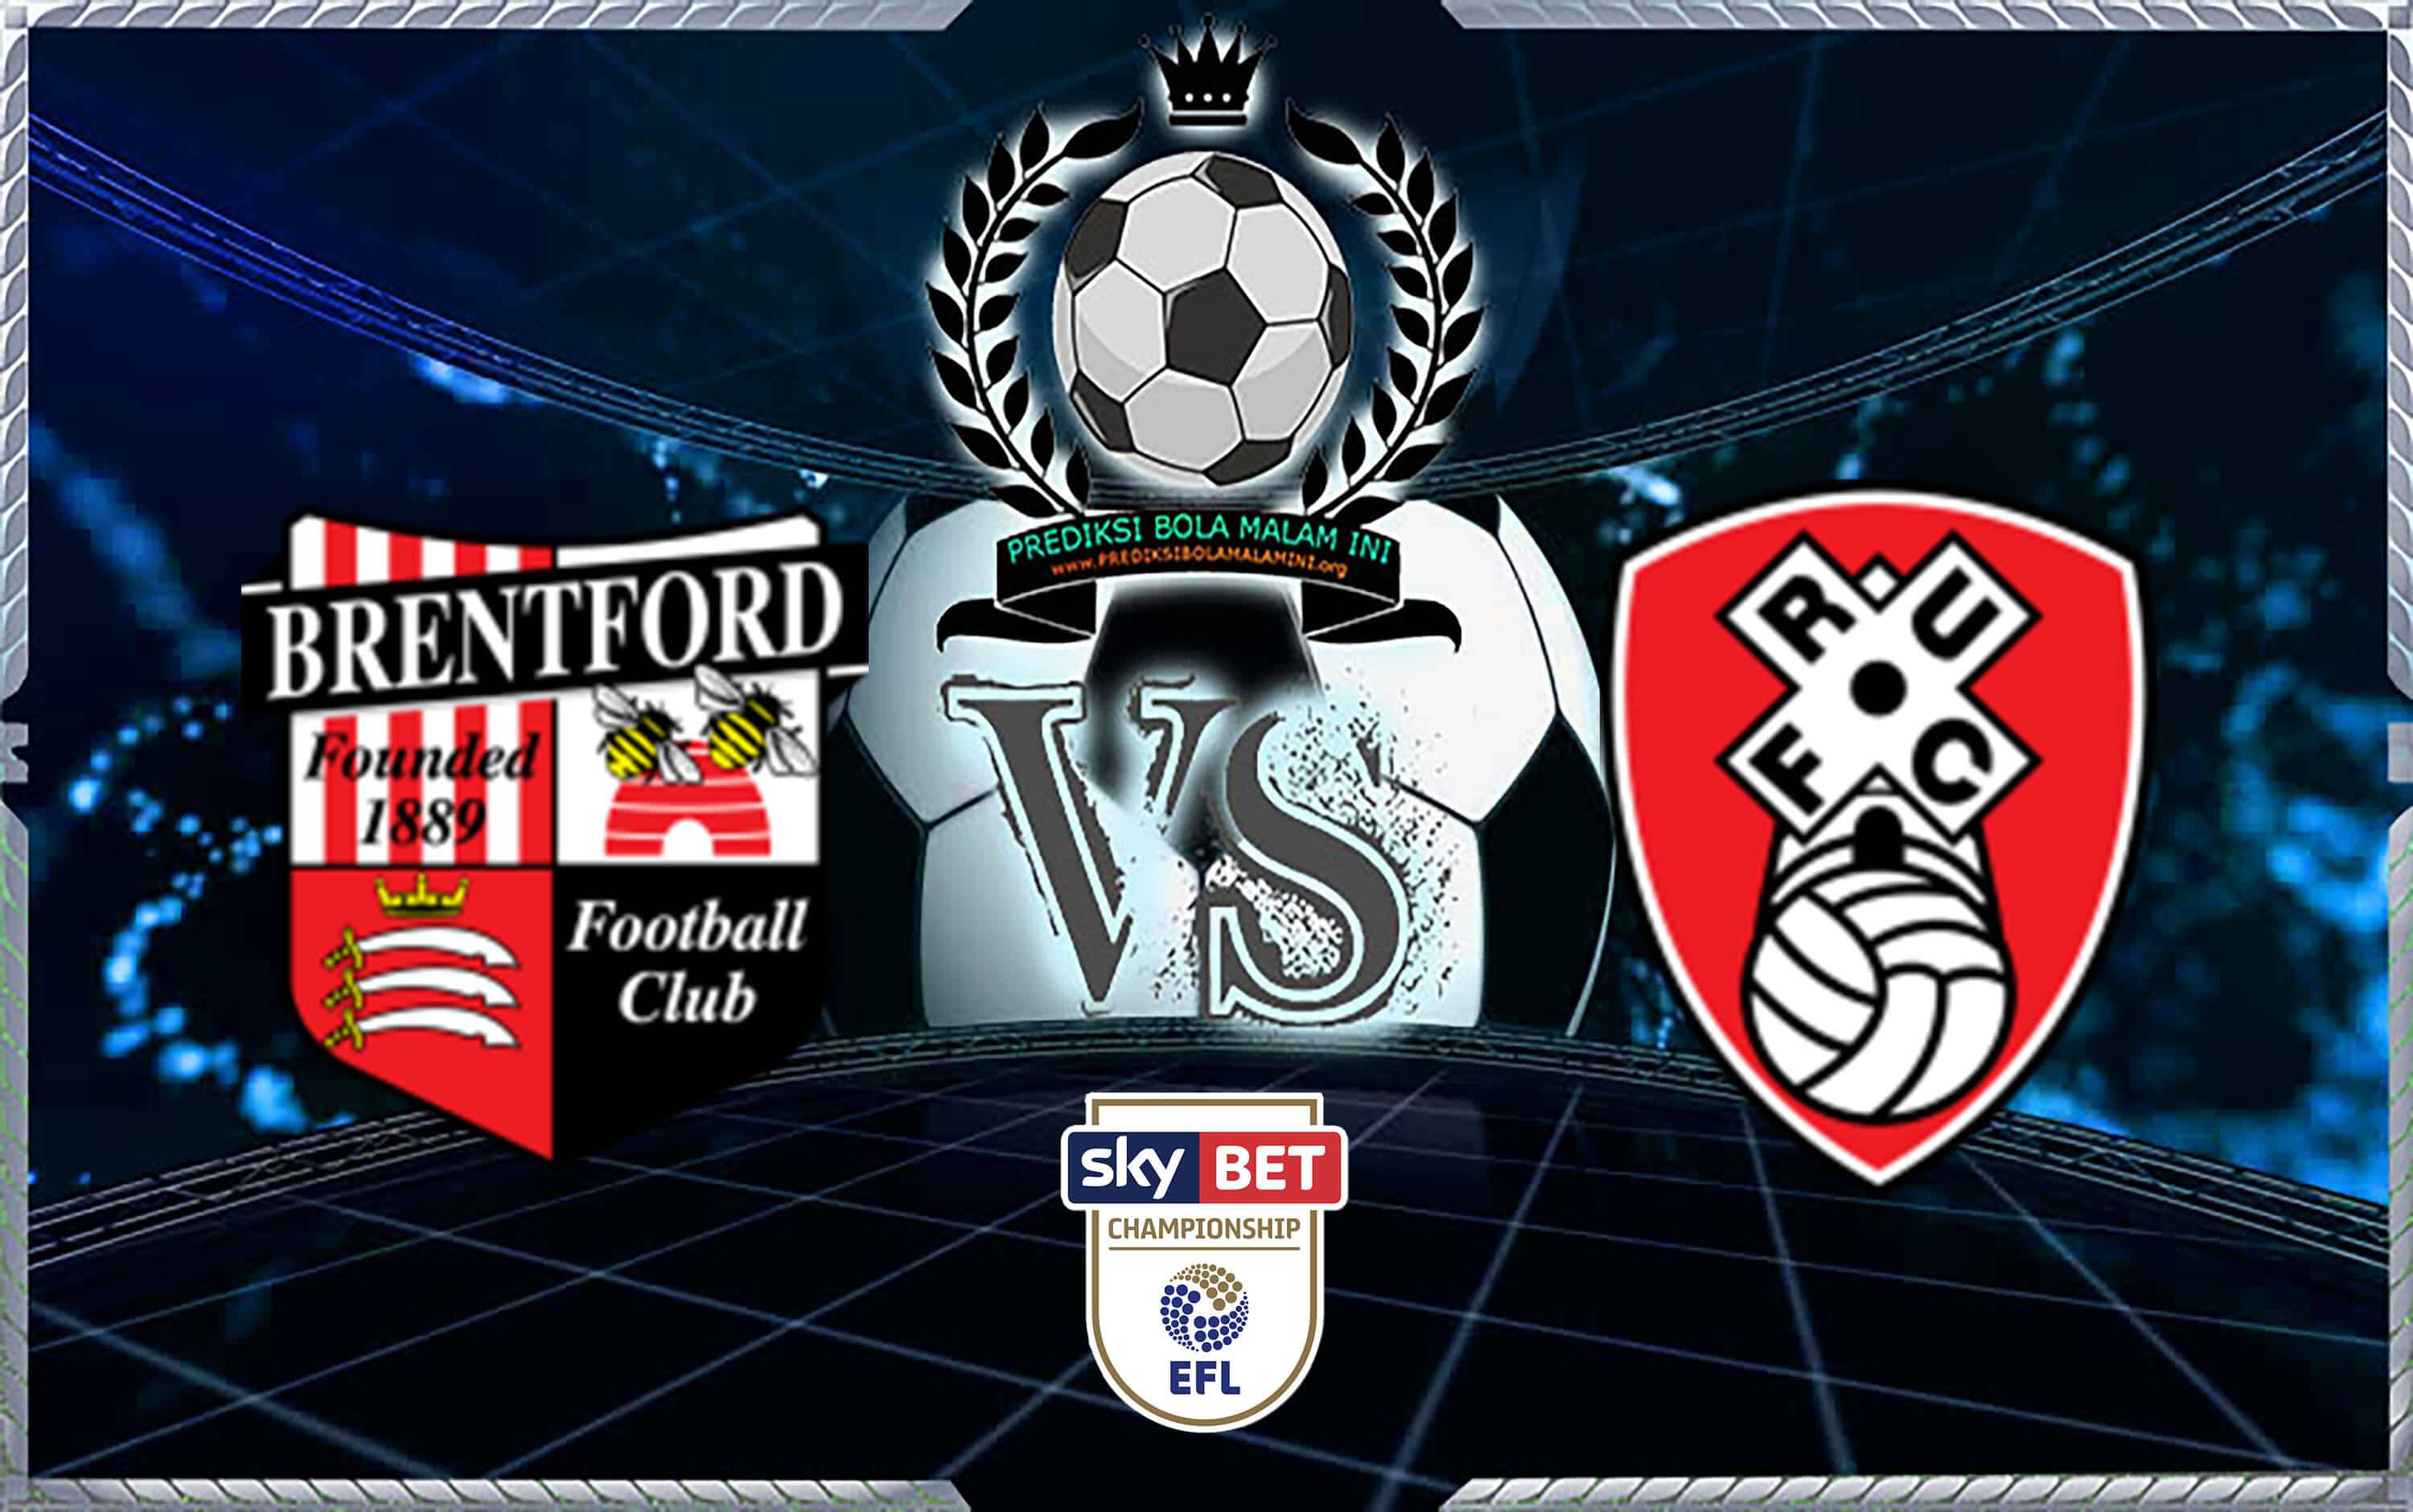 Sepatu Prediksi Brentford Vs Rotherham United 4 Agustus 2018 &quot;width =&quot; 640 &quot;height =&quot; 401 &quot;/&gt; </p> <p><strong> <span style=